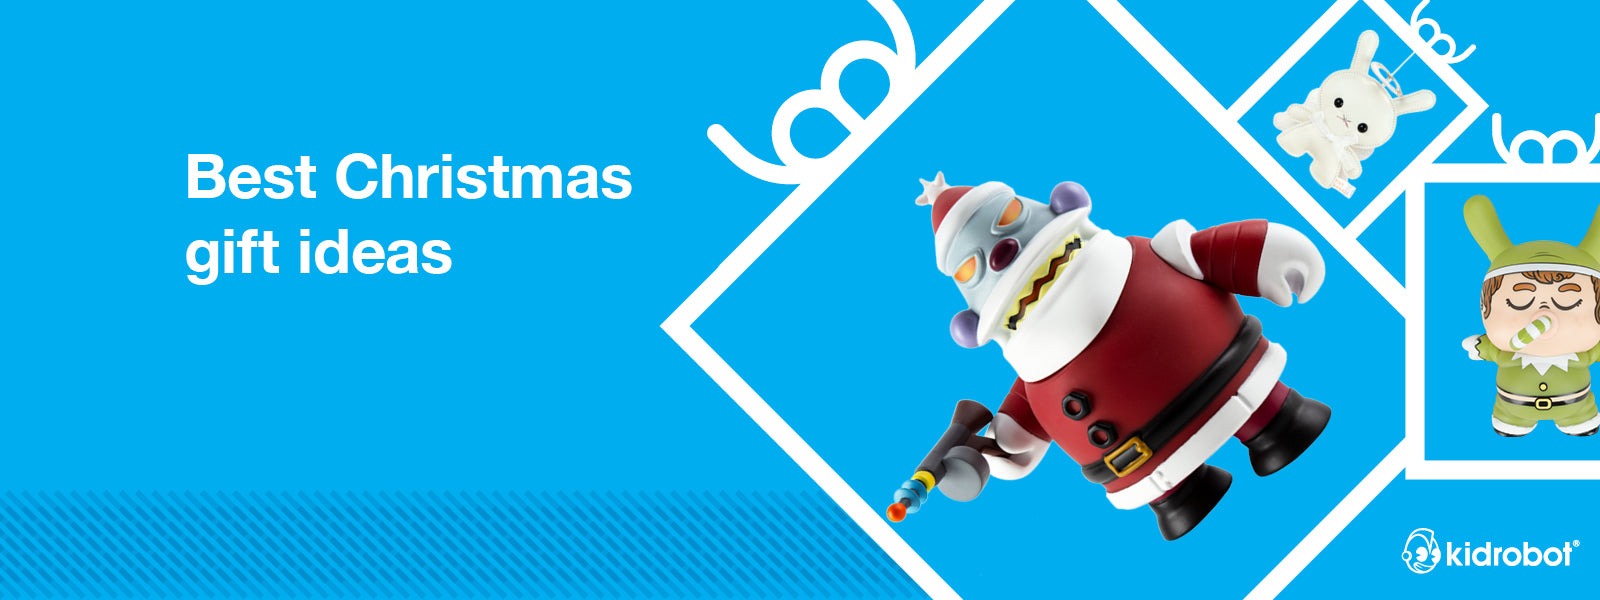 Best Christmas Gift Ideas - Ornaments, Christmas Art Figures, Holiday Dunnys and more